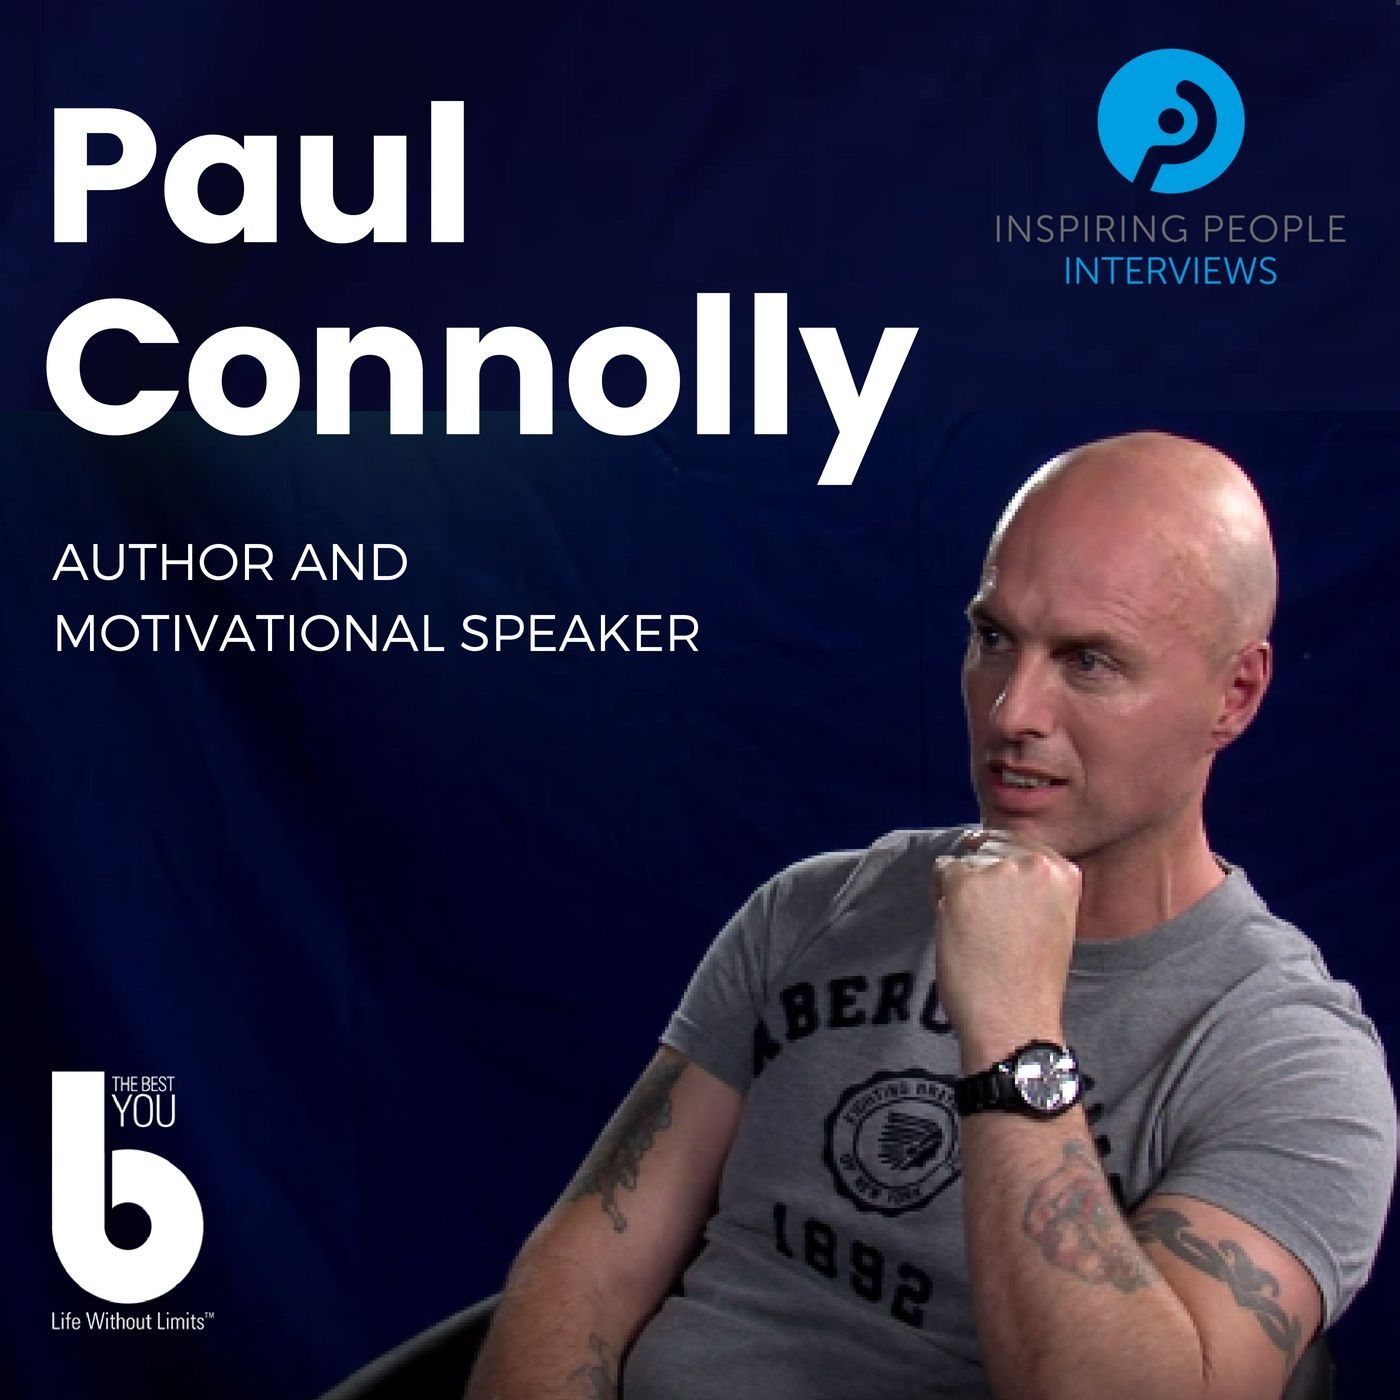 Listen to Episode #10: Paul Connolly